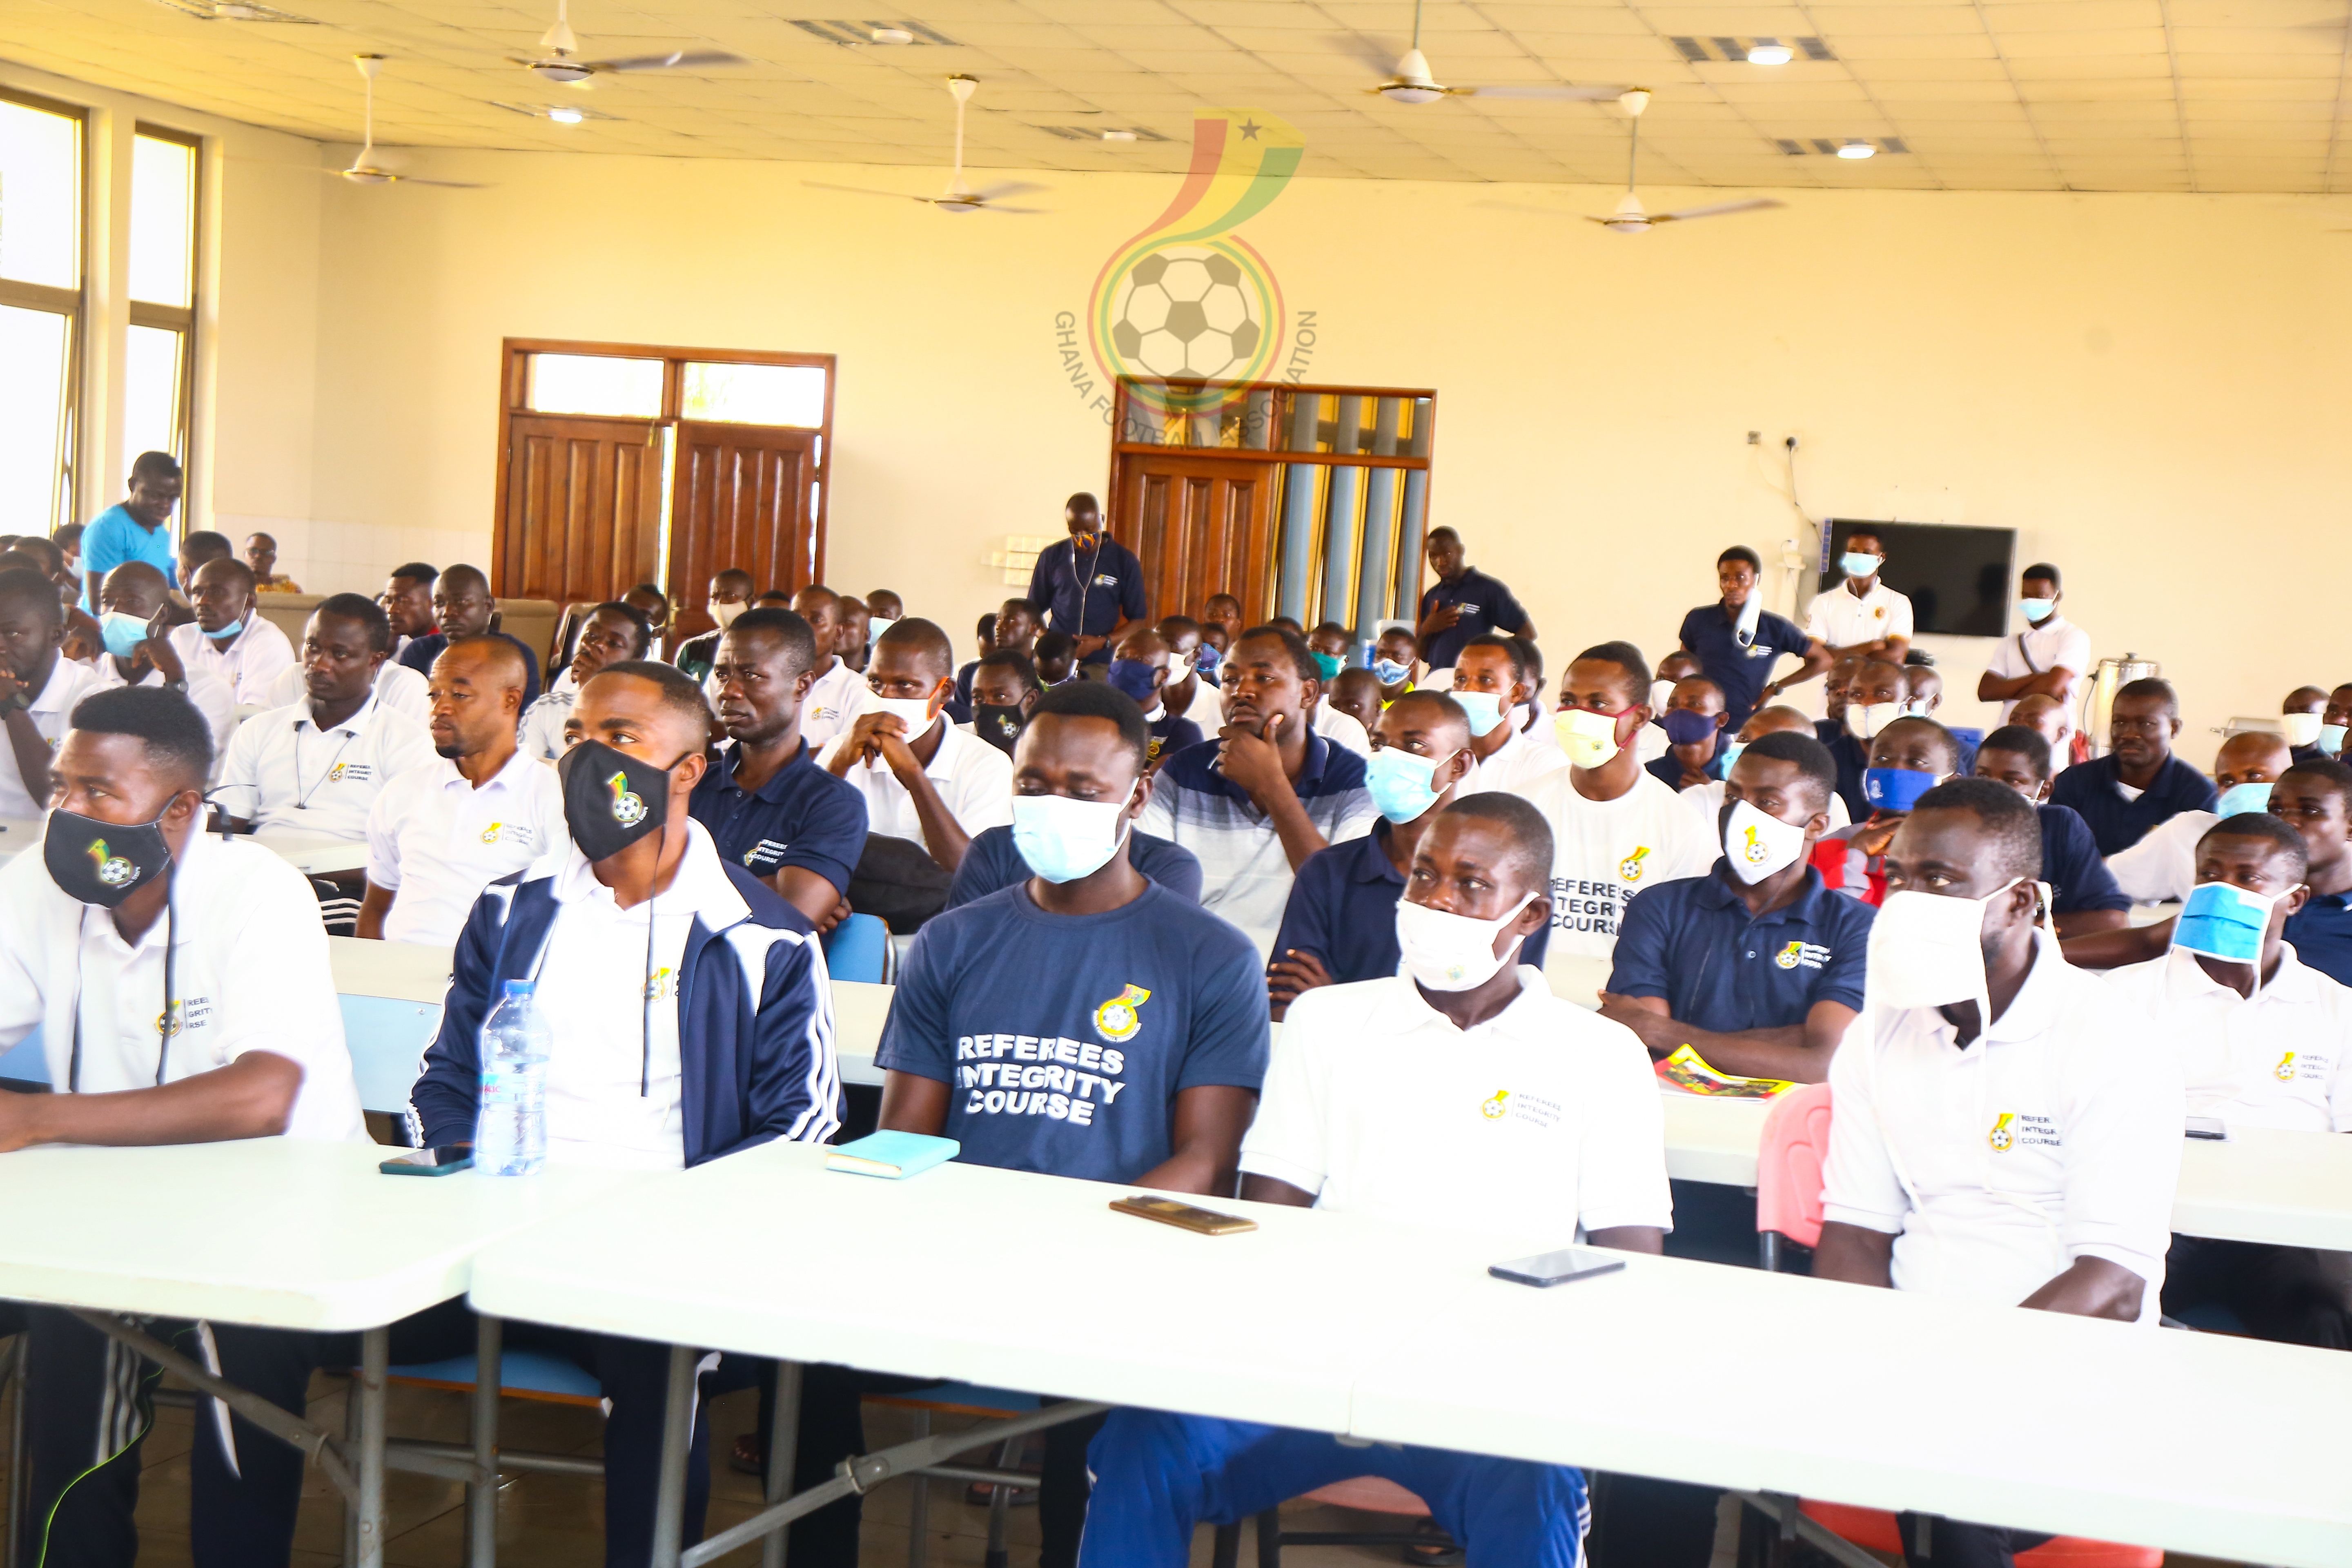 PSX 20210106 154121 - First batch of Referees' end training ahead of Division One League kick off